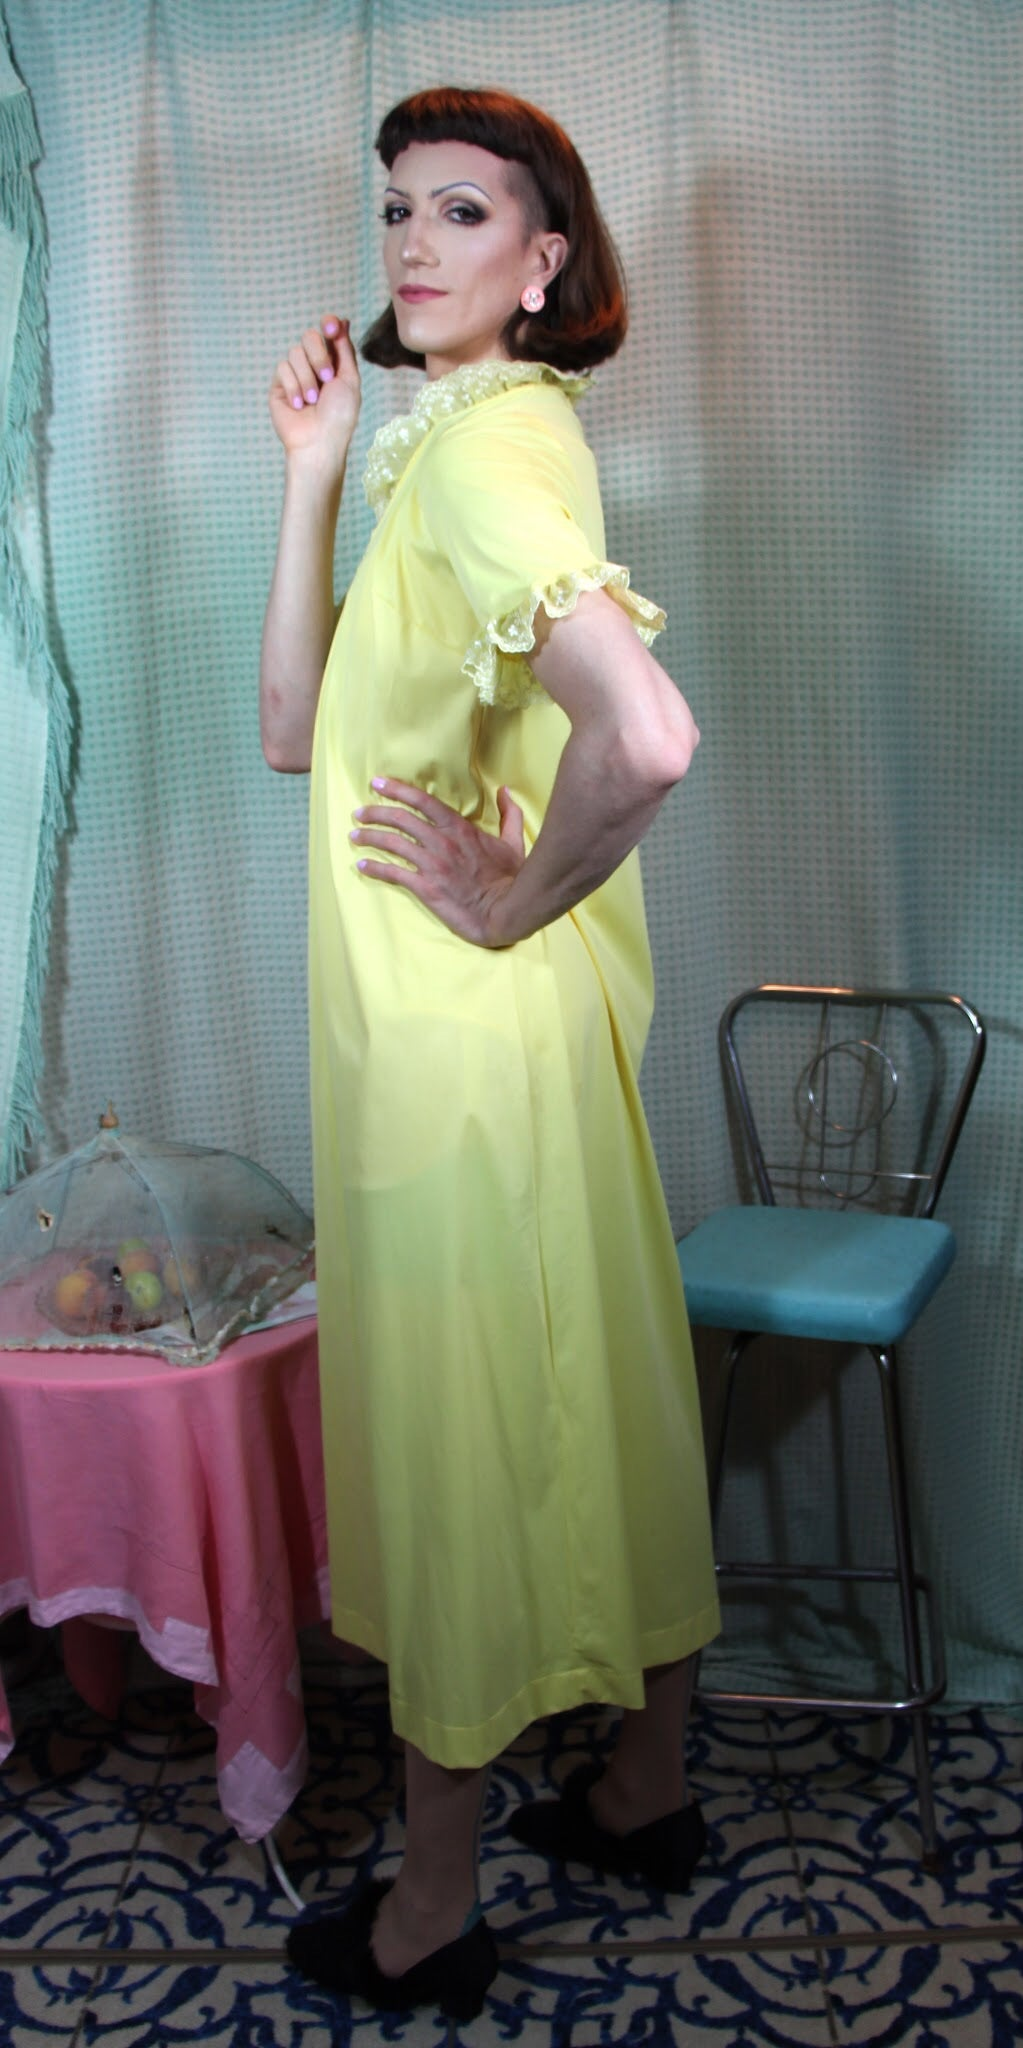 Sunny Yellow Nylon House Dress S/M+ #128